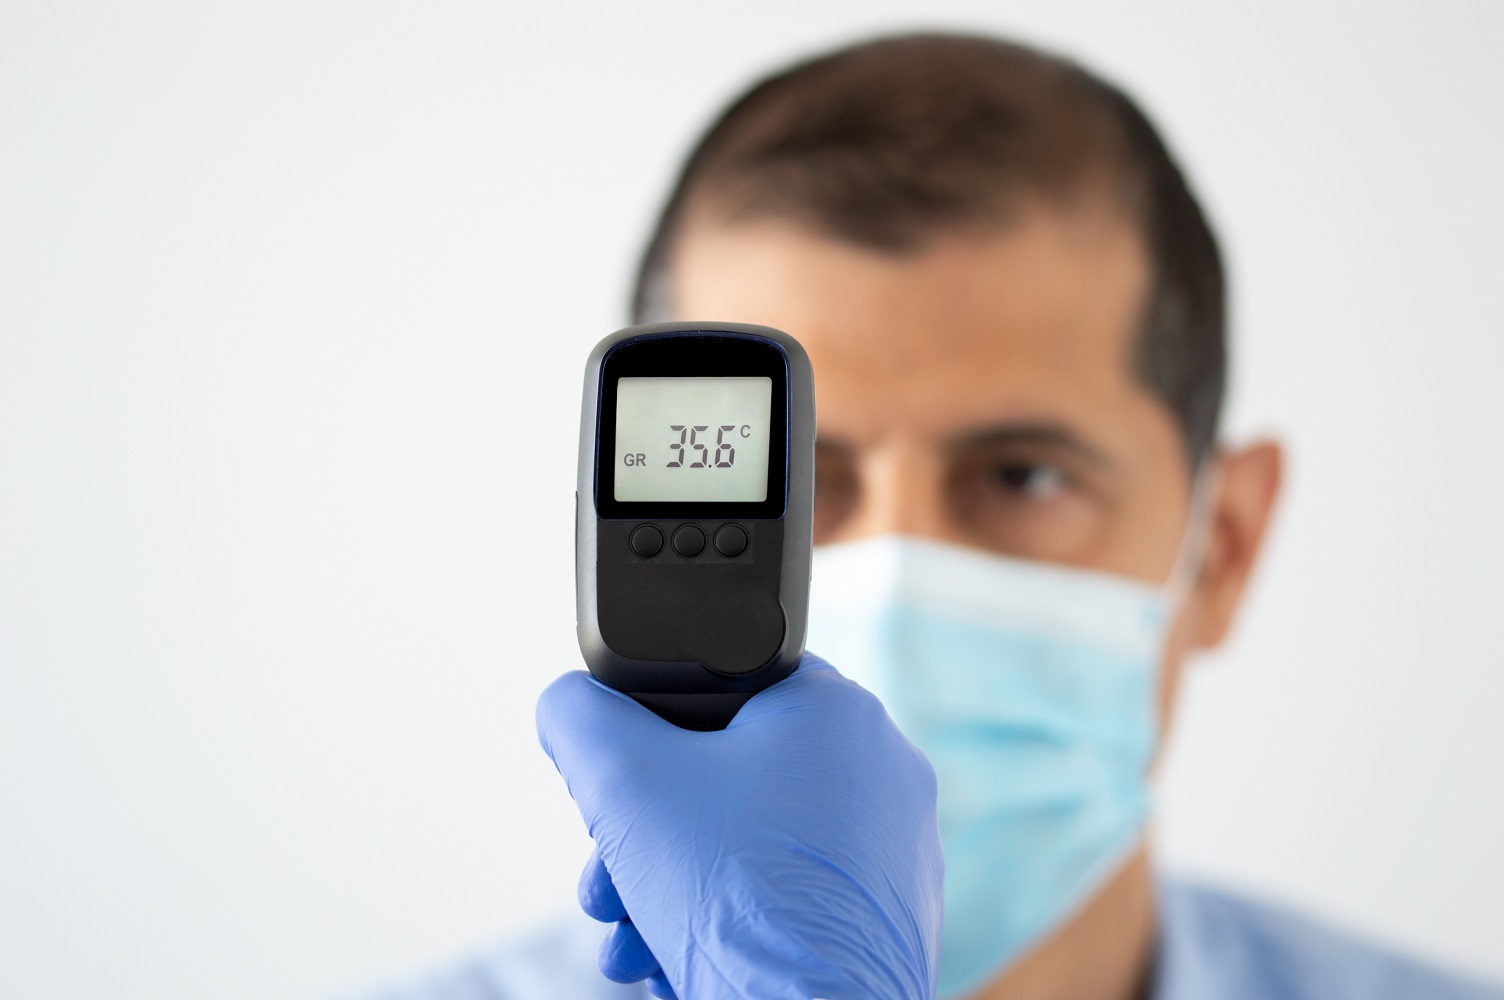 young man getting his temperature taken with an infrared thermometer by a healthcare worker